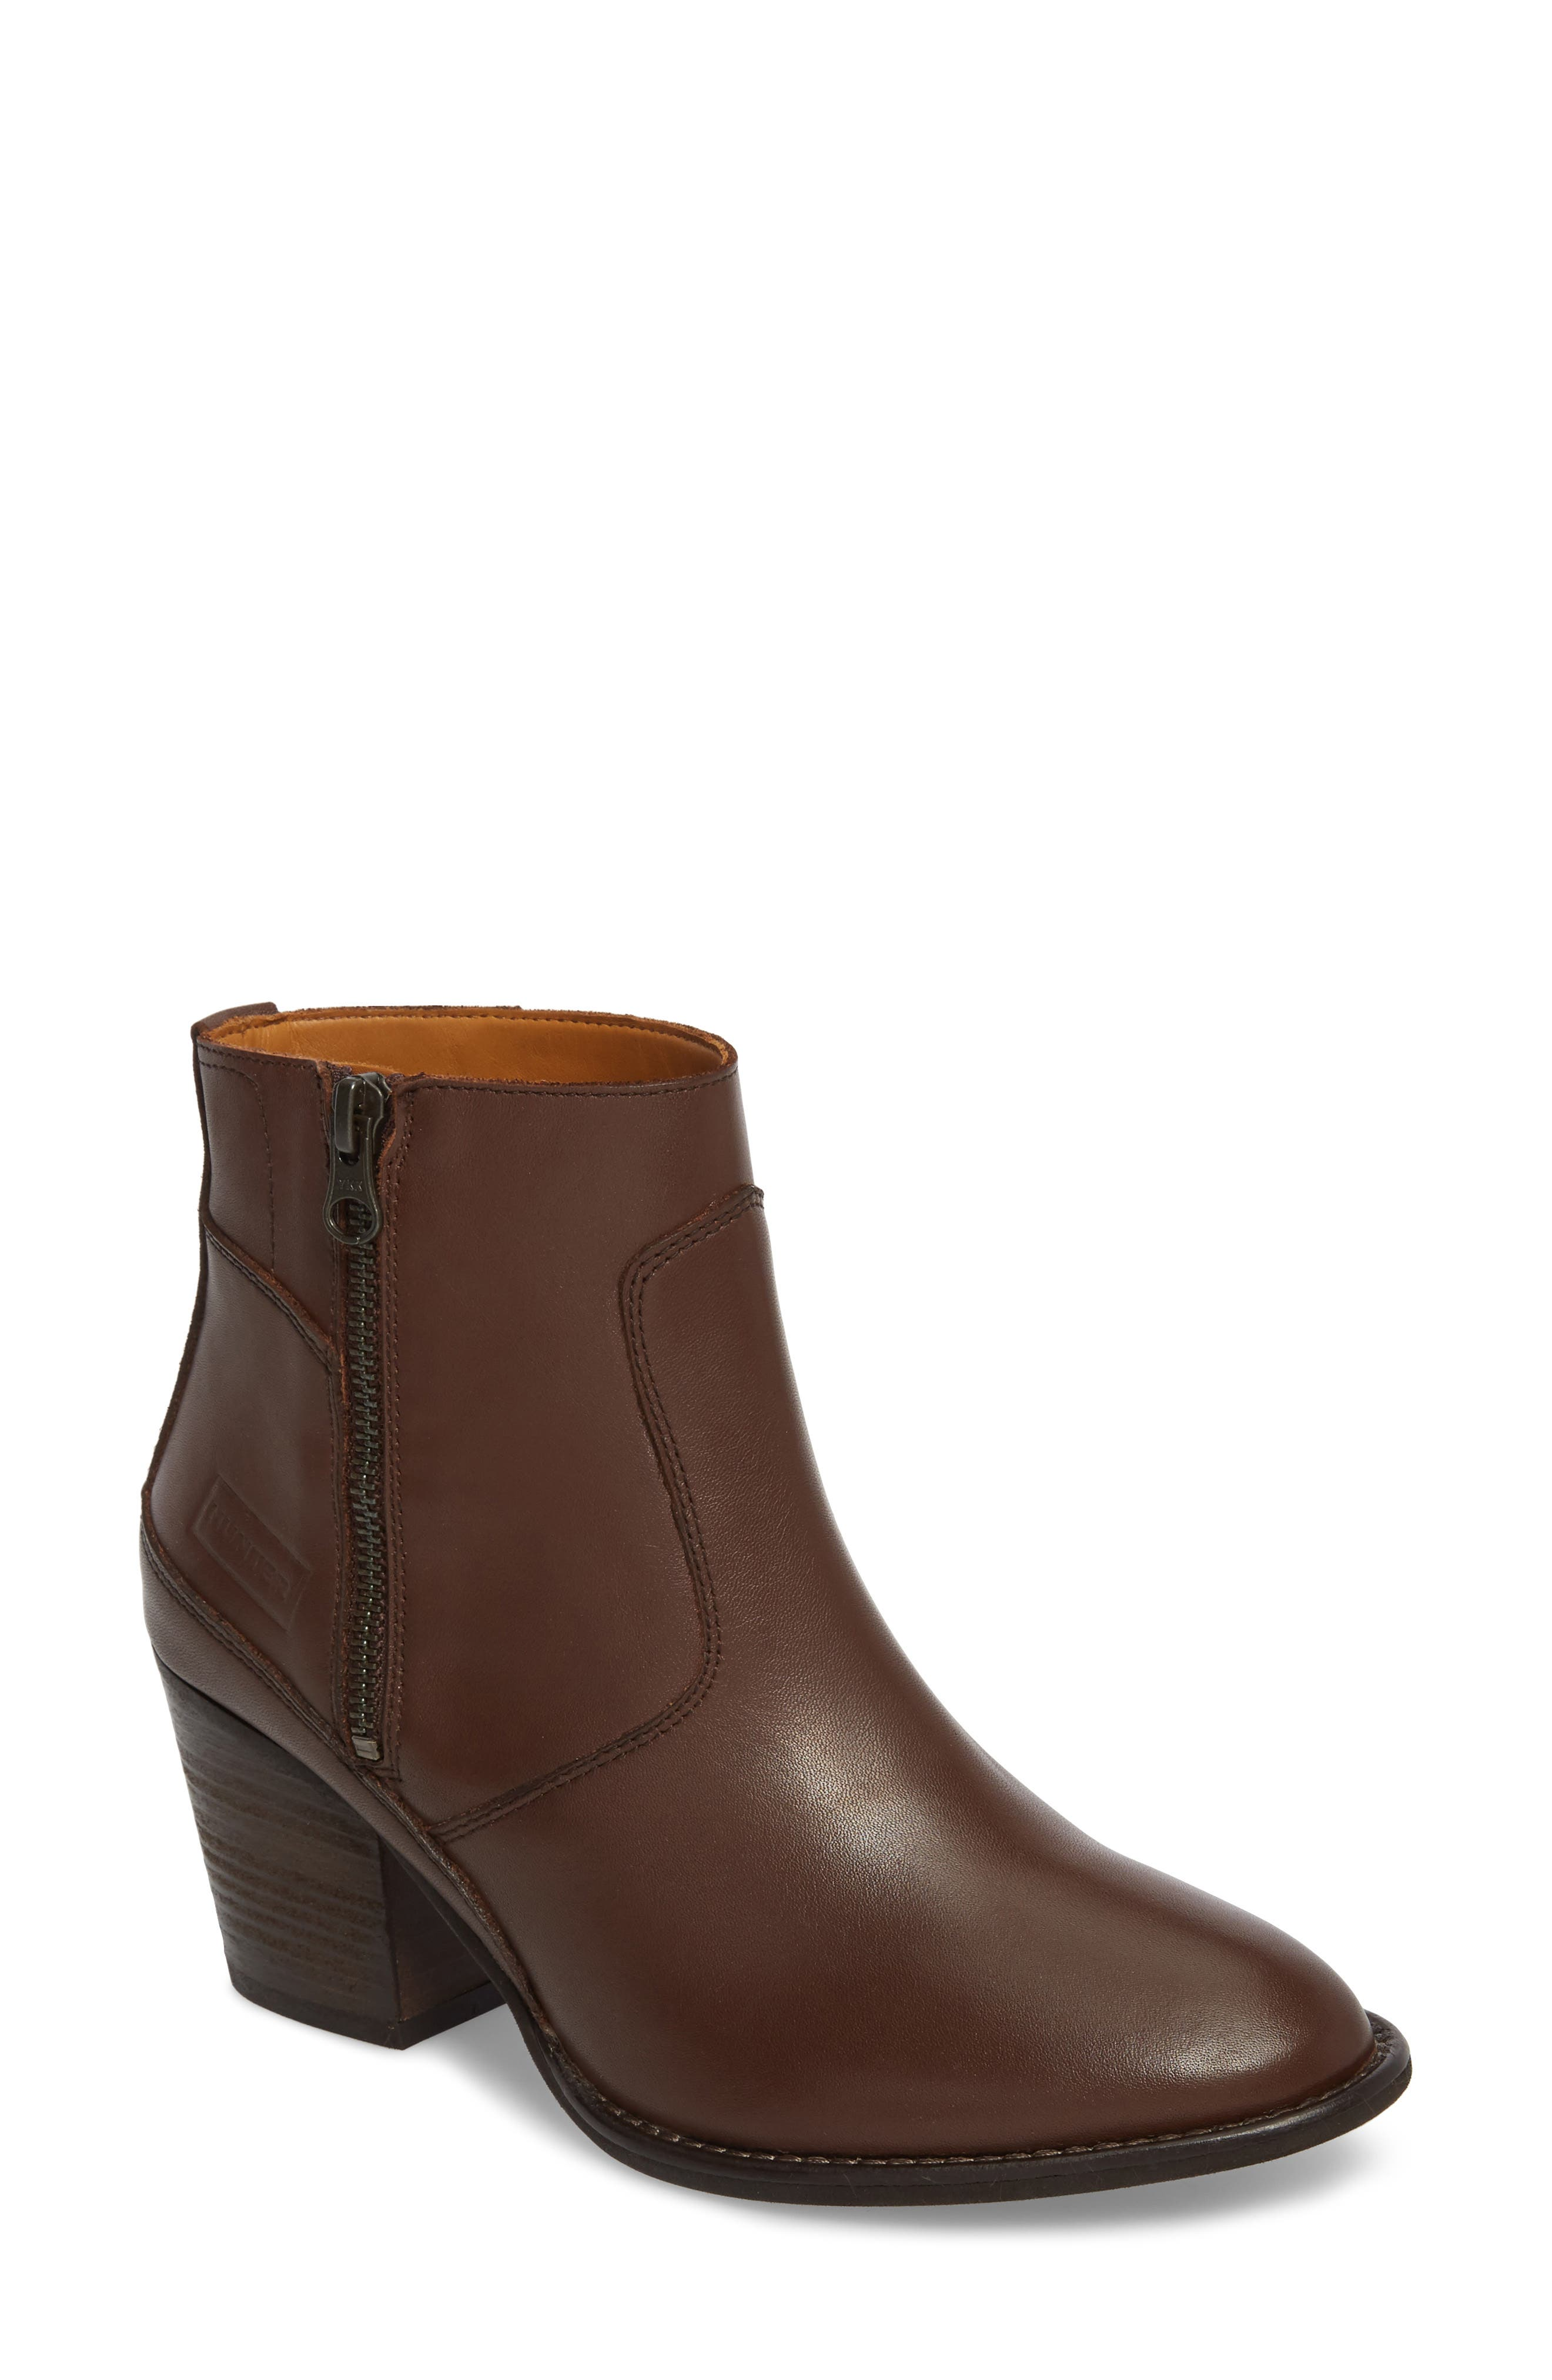 Refined Water Resistant Zip Bootie,                             Main thumbnail 1, color,                             Bitter Chocolate Leather